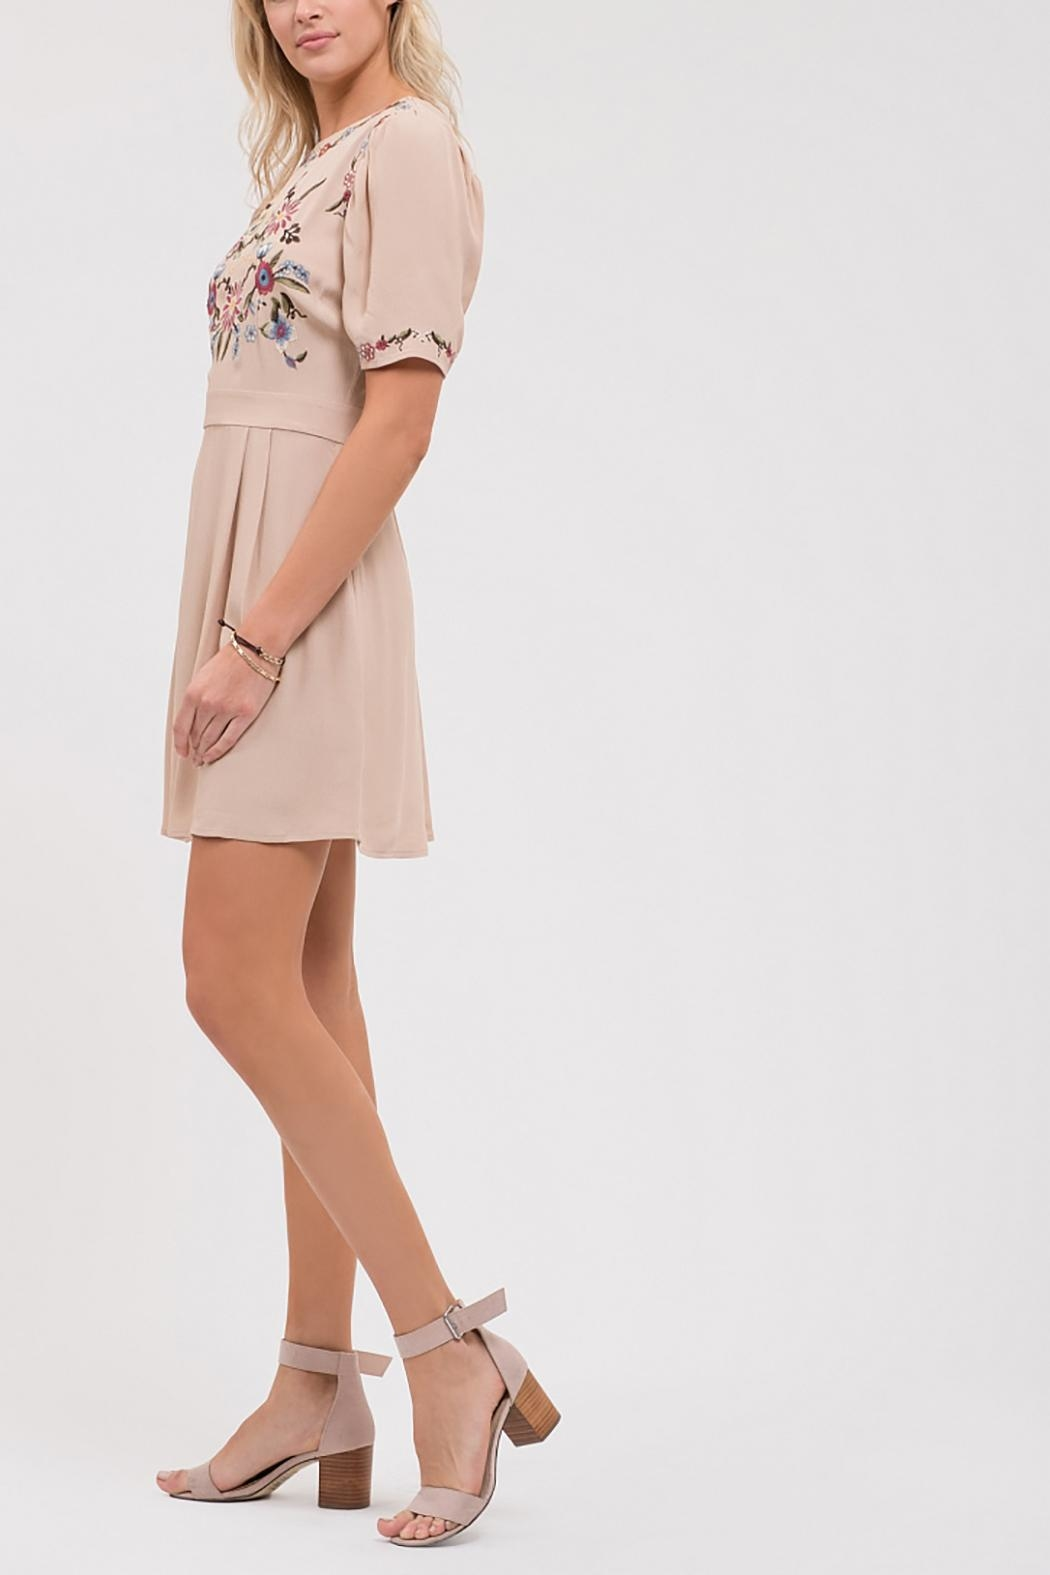 Blu Pepper Pleated Embroidered Dress - Front Full Image